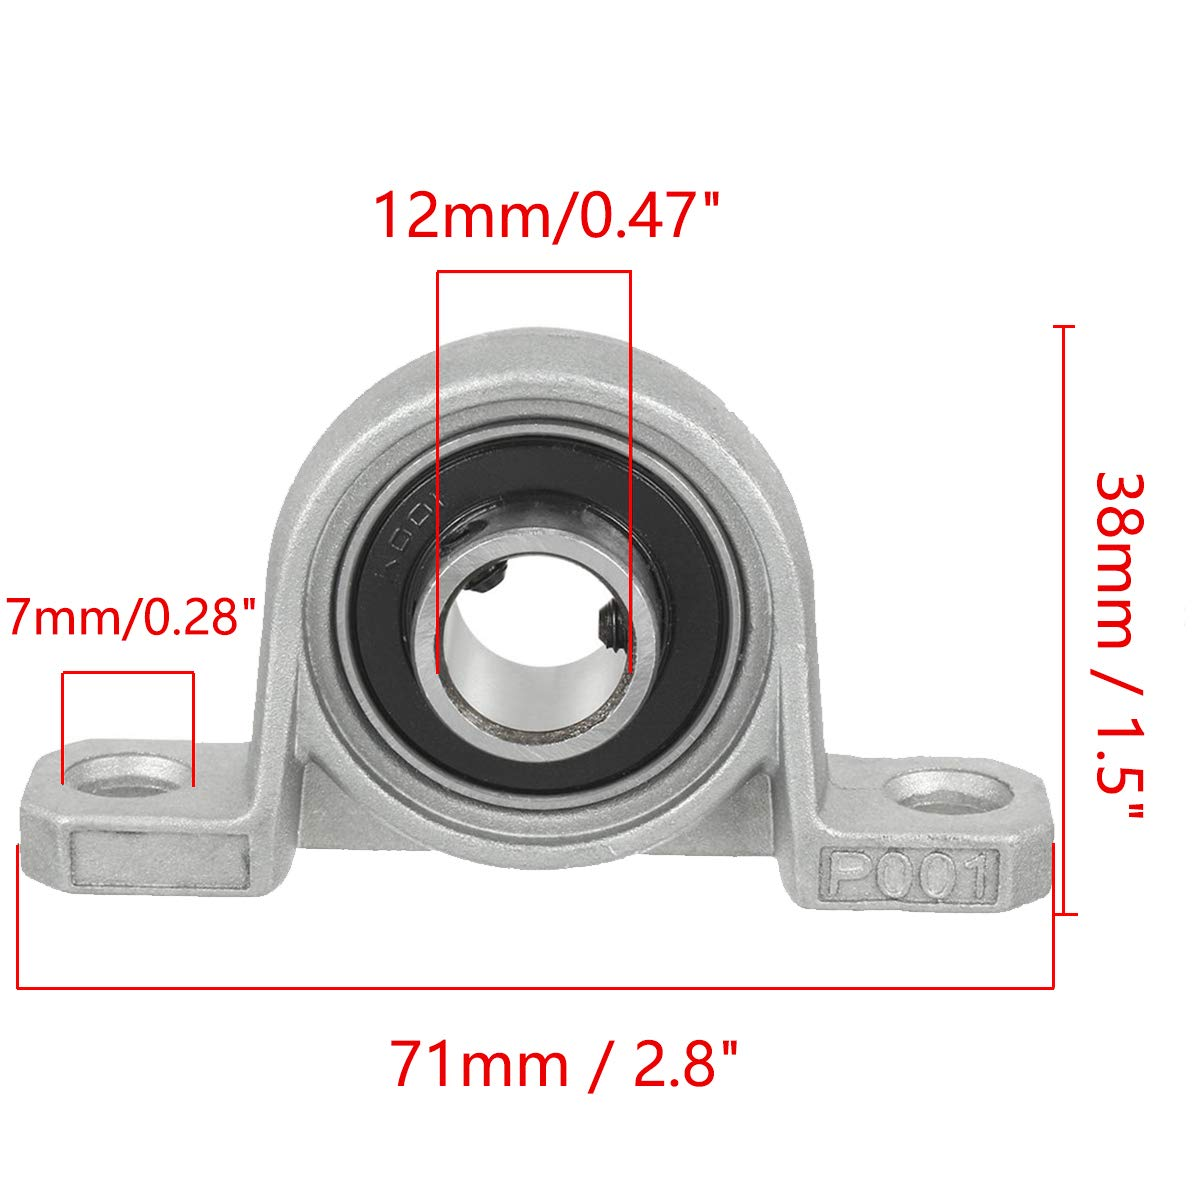 XMHF 2Pcs KP001 12mm Bore Zinc Alloy Inner Ball Mounted Pillow Block Insert Bearing